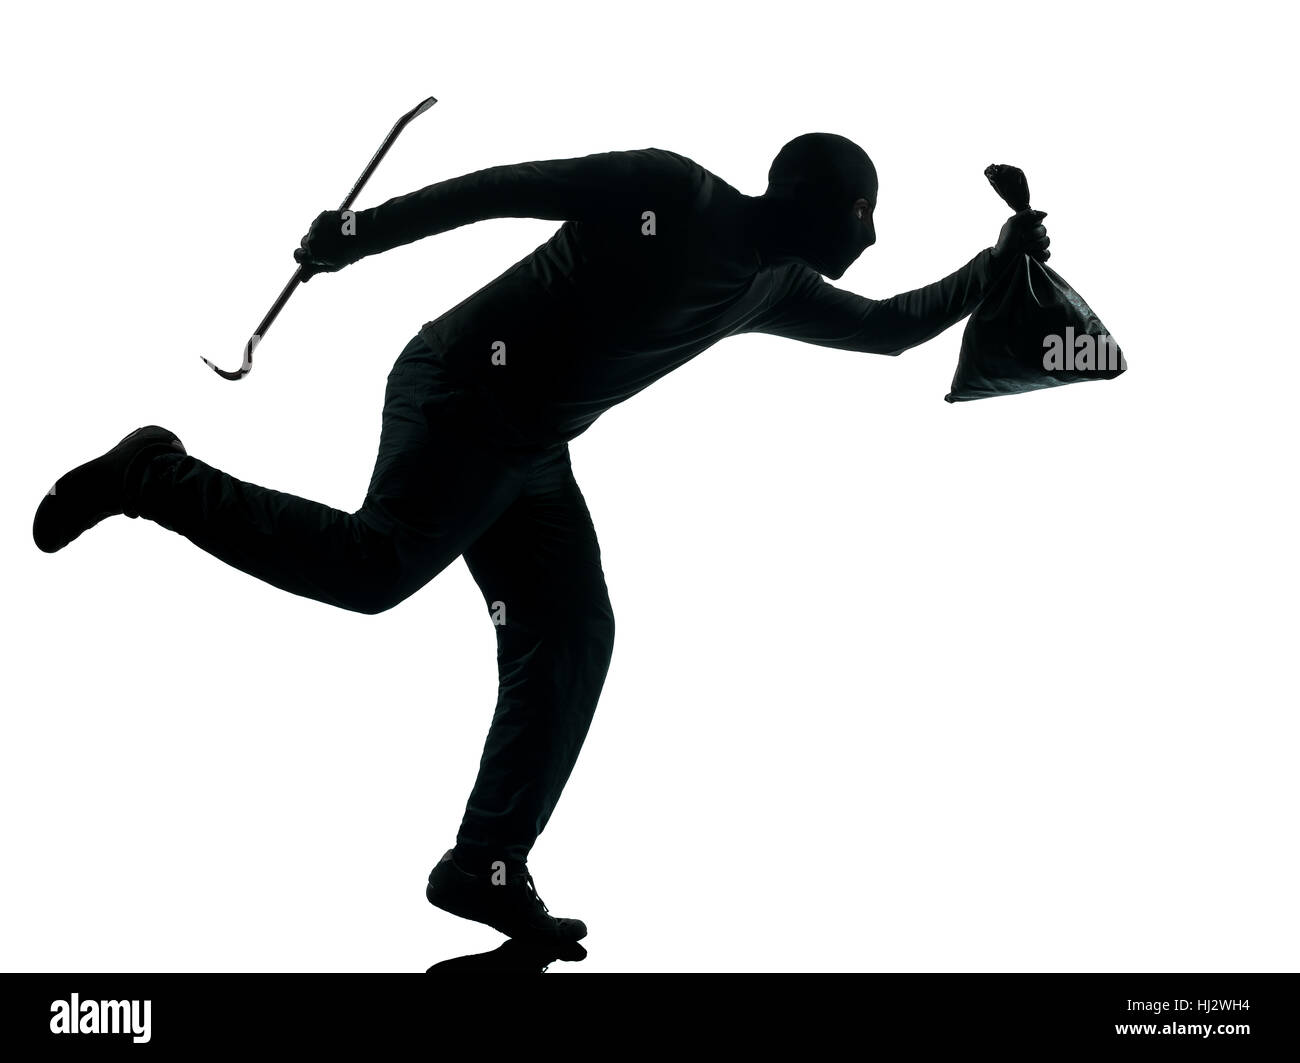 thief criminal running in silhouette studio isolated on